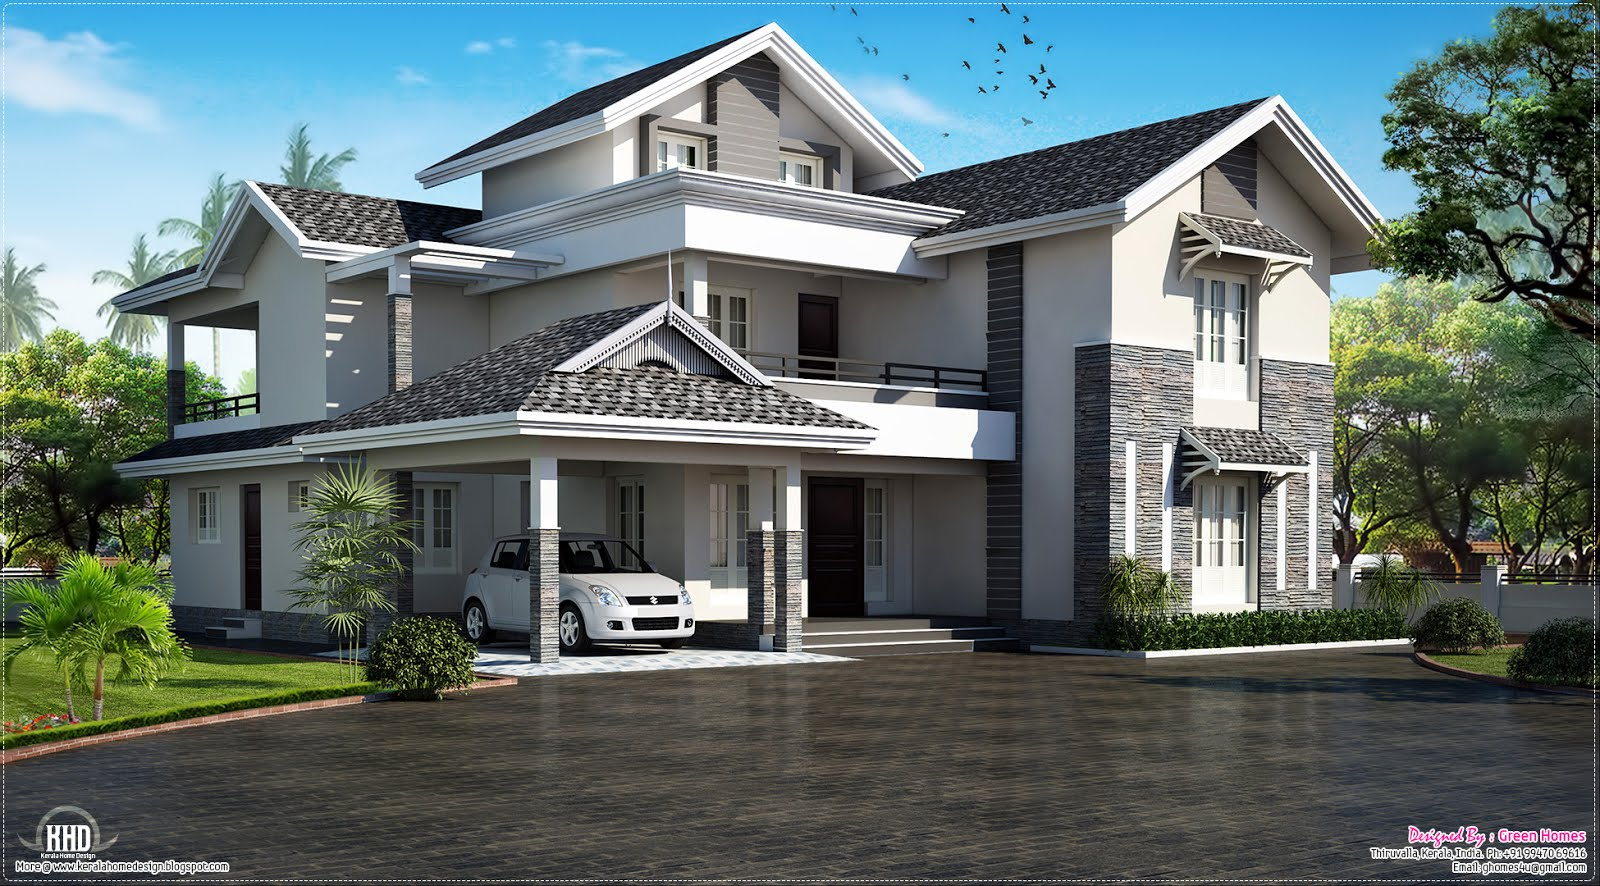 Sloping Roof House Villa Design Kerala Home Design And Floor Plans Future Home Design